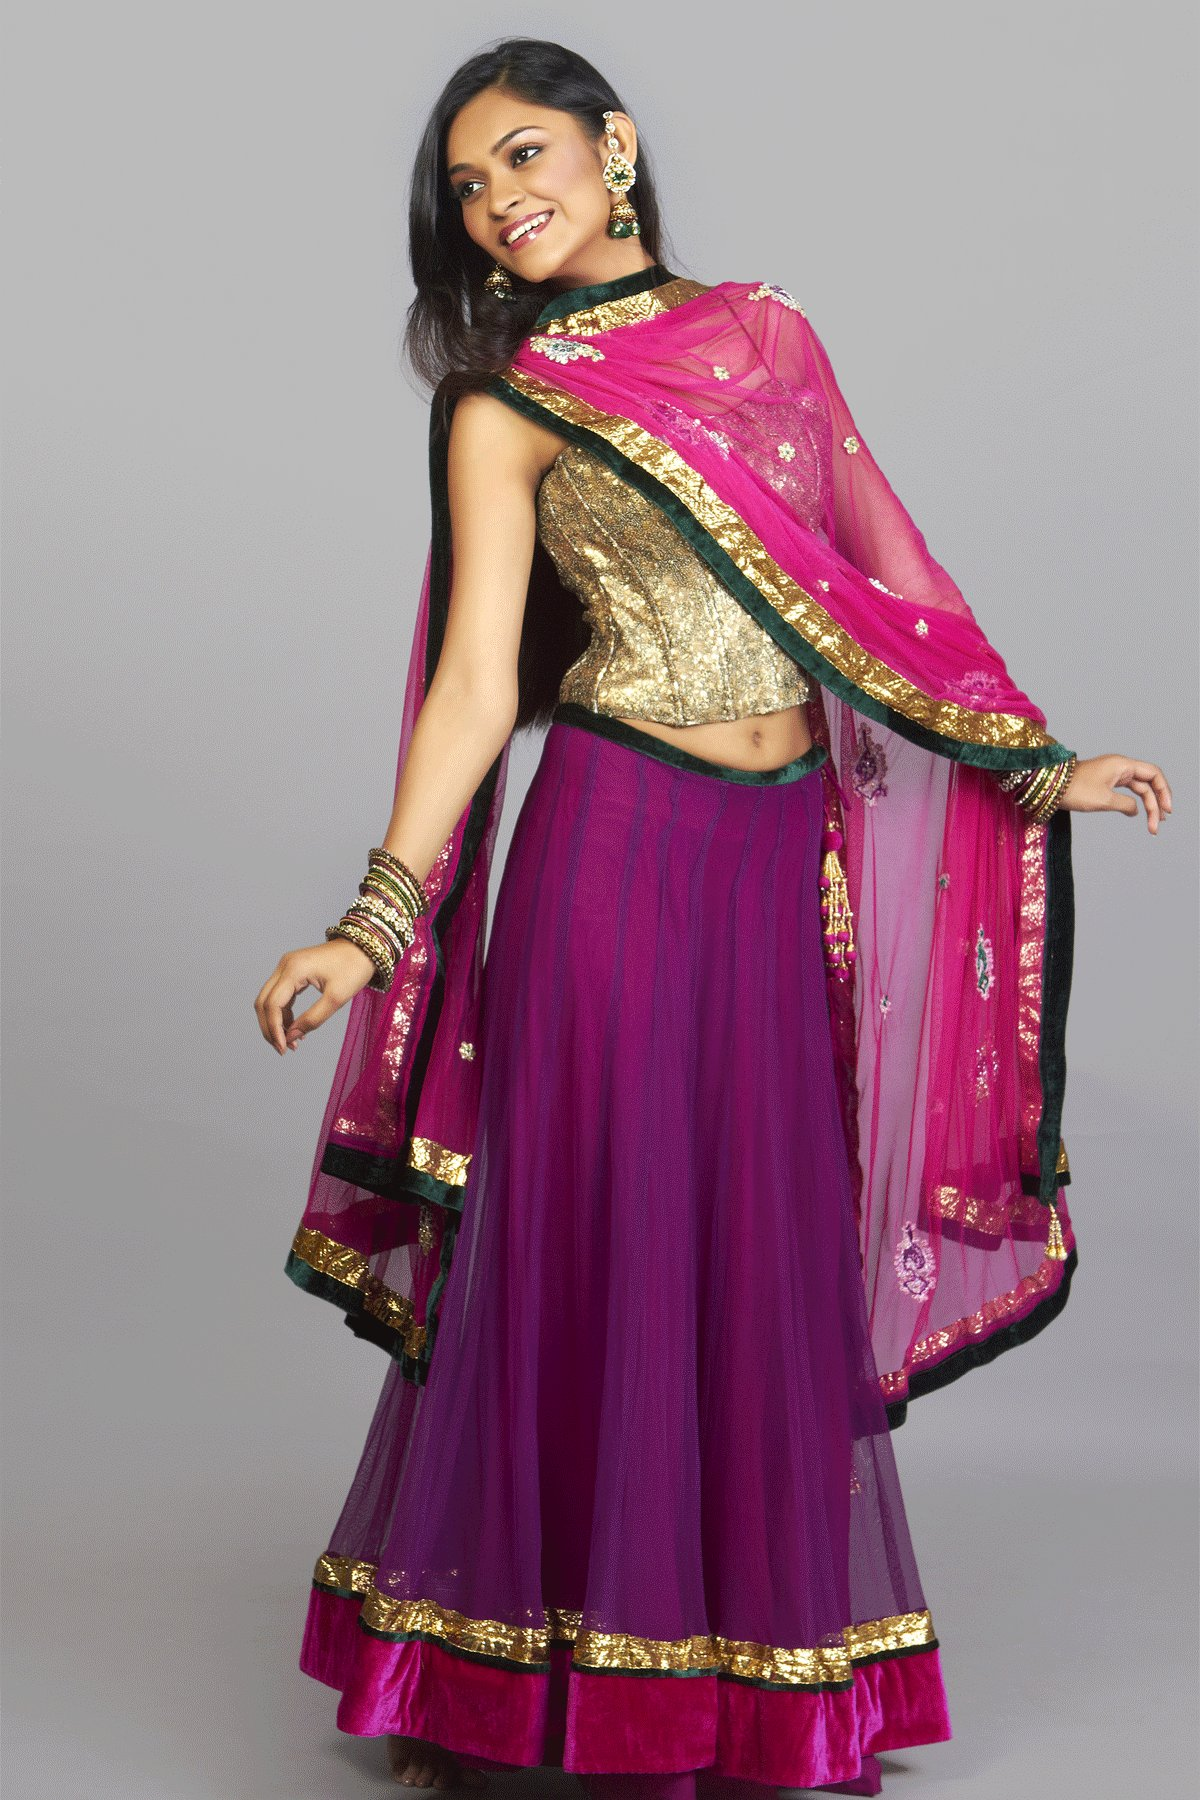 Net Lehenga Design And Pictures Lehenga Designs